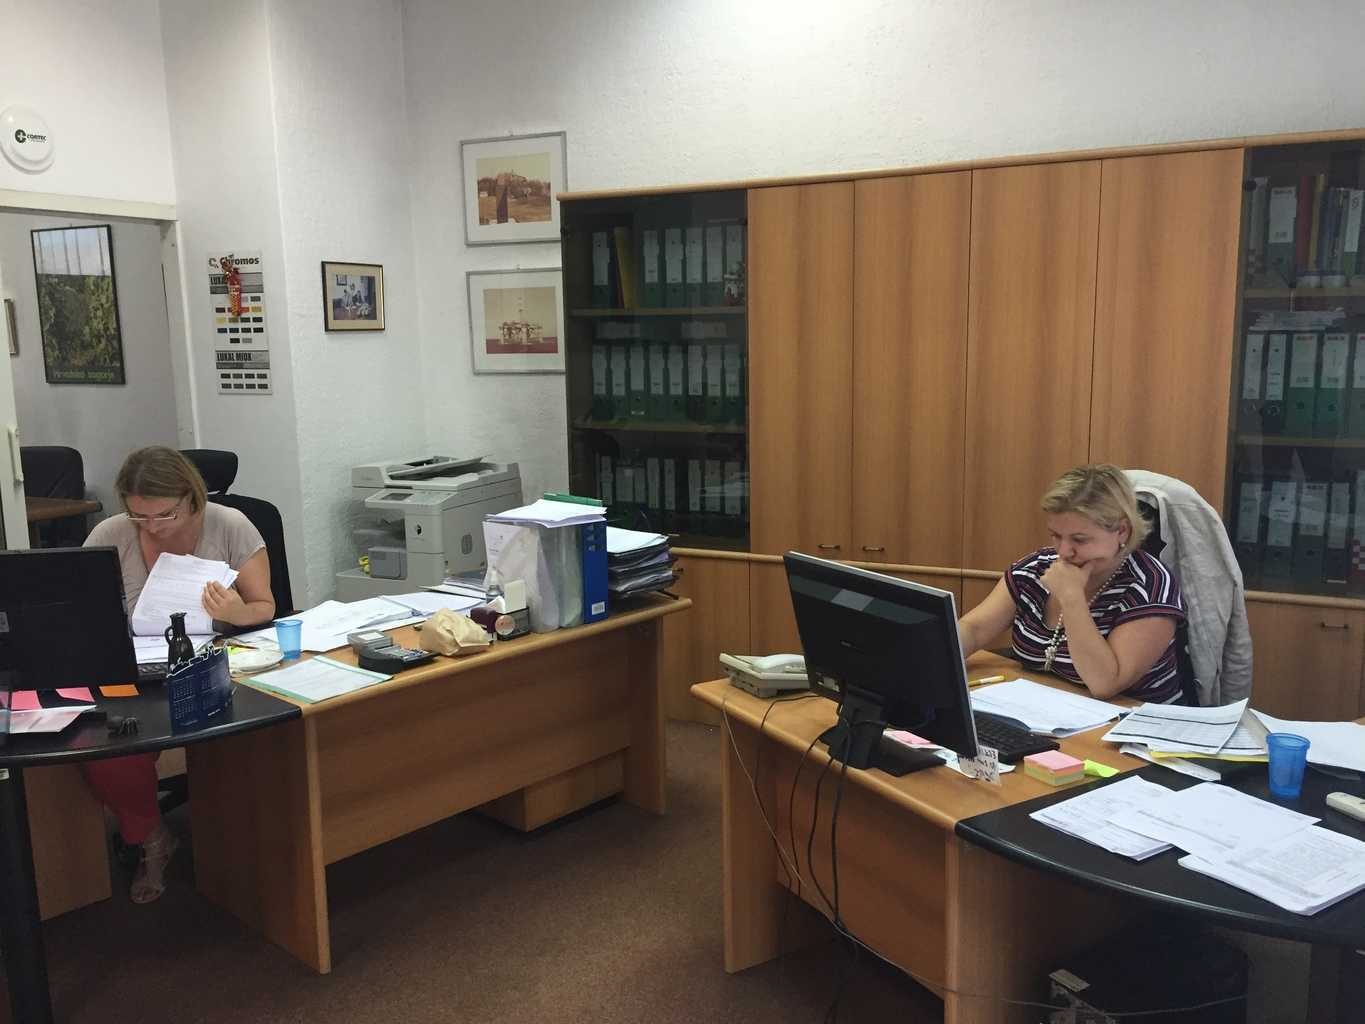 CorteCros office with workers at their desks